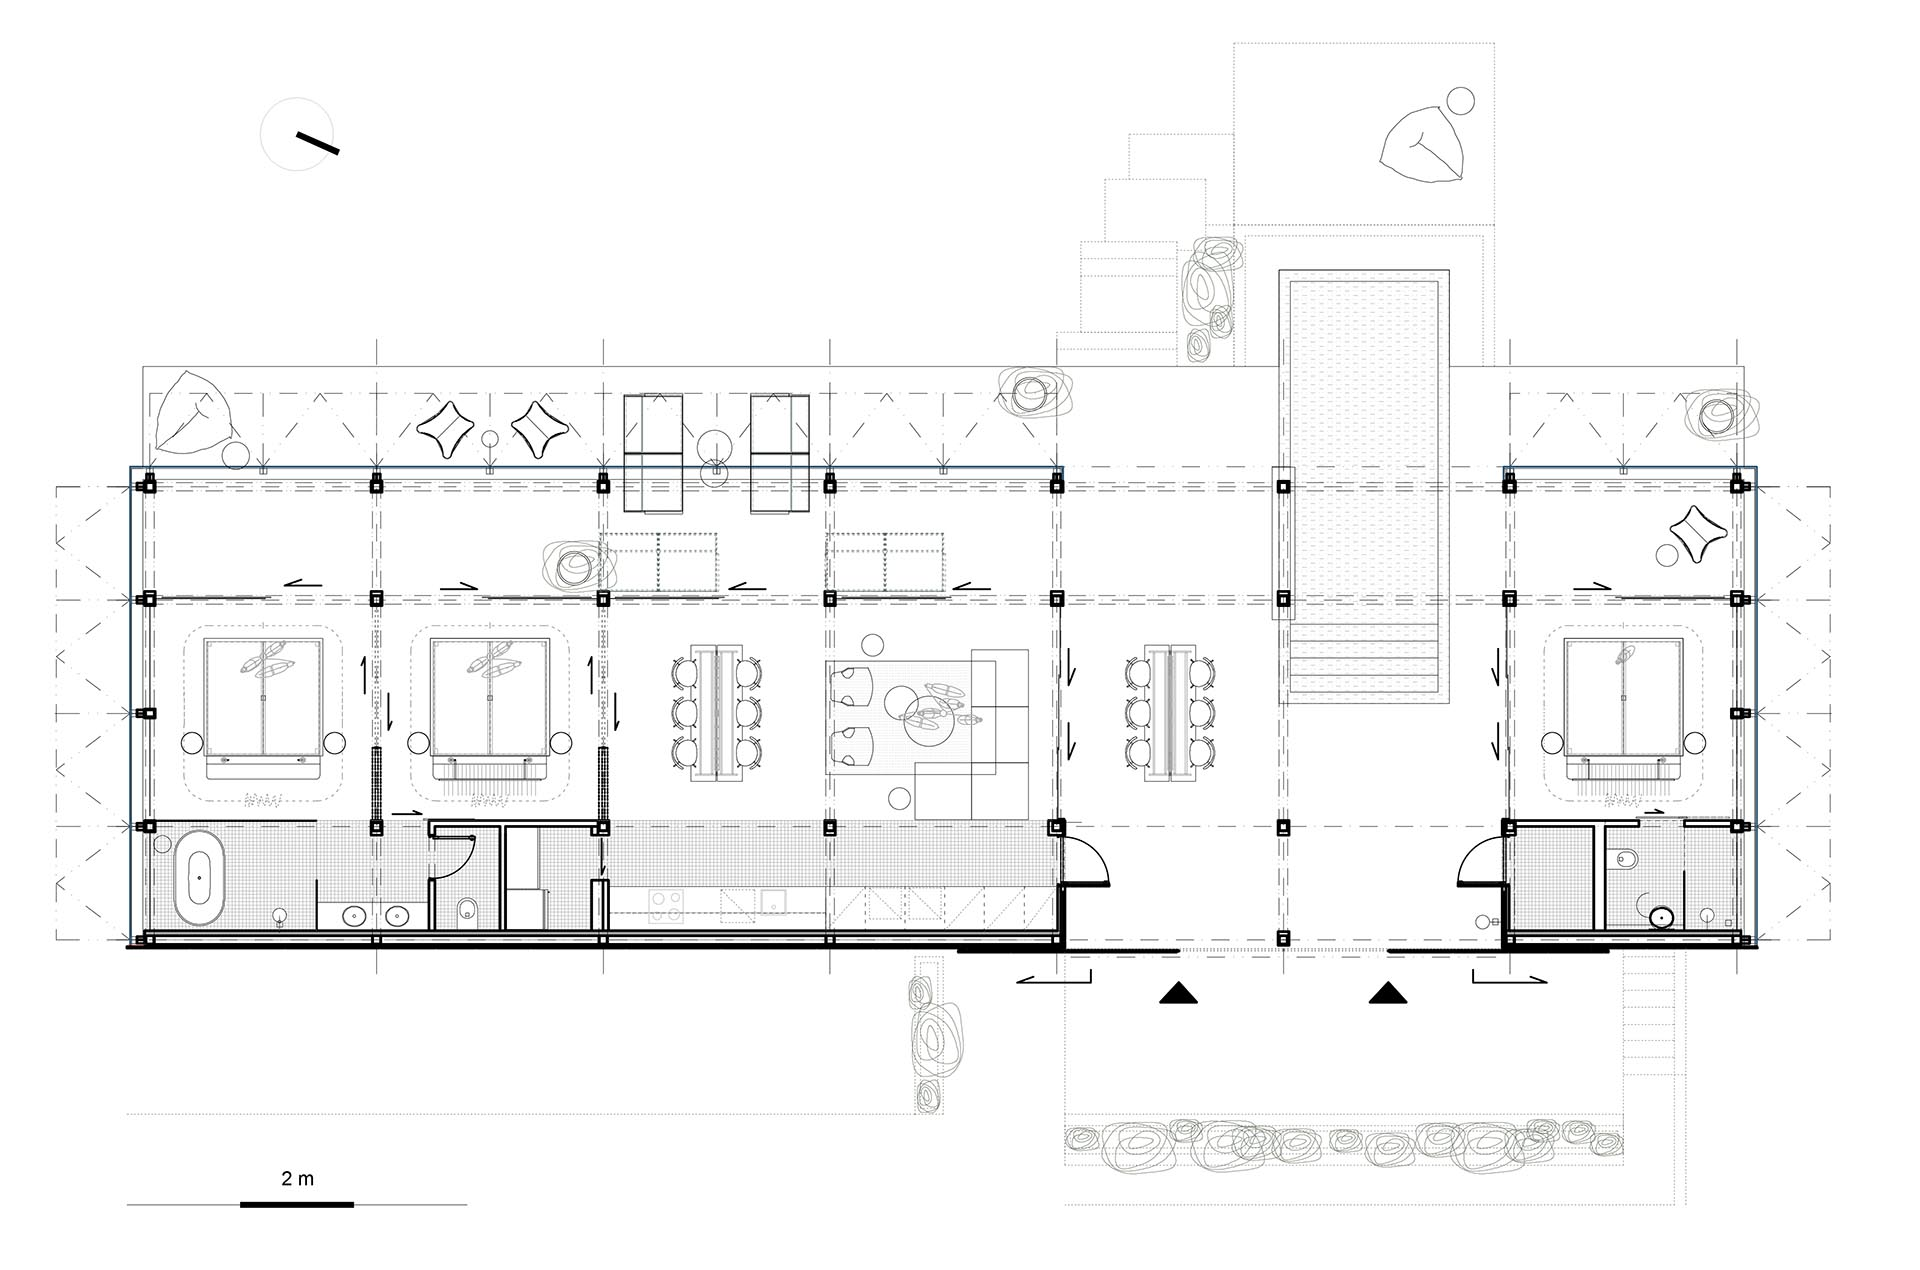 The floor plan of a three bedroom, single story house.